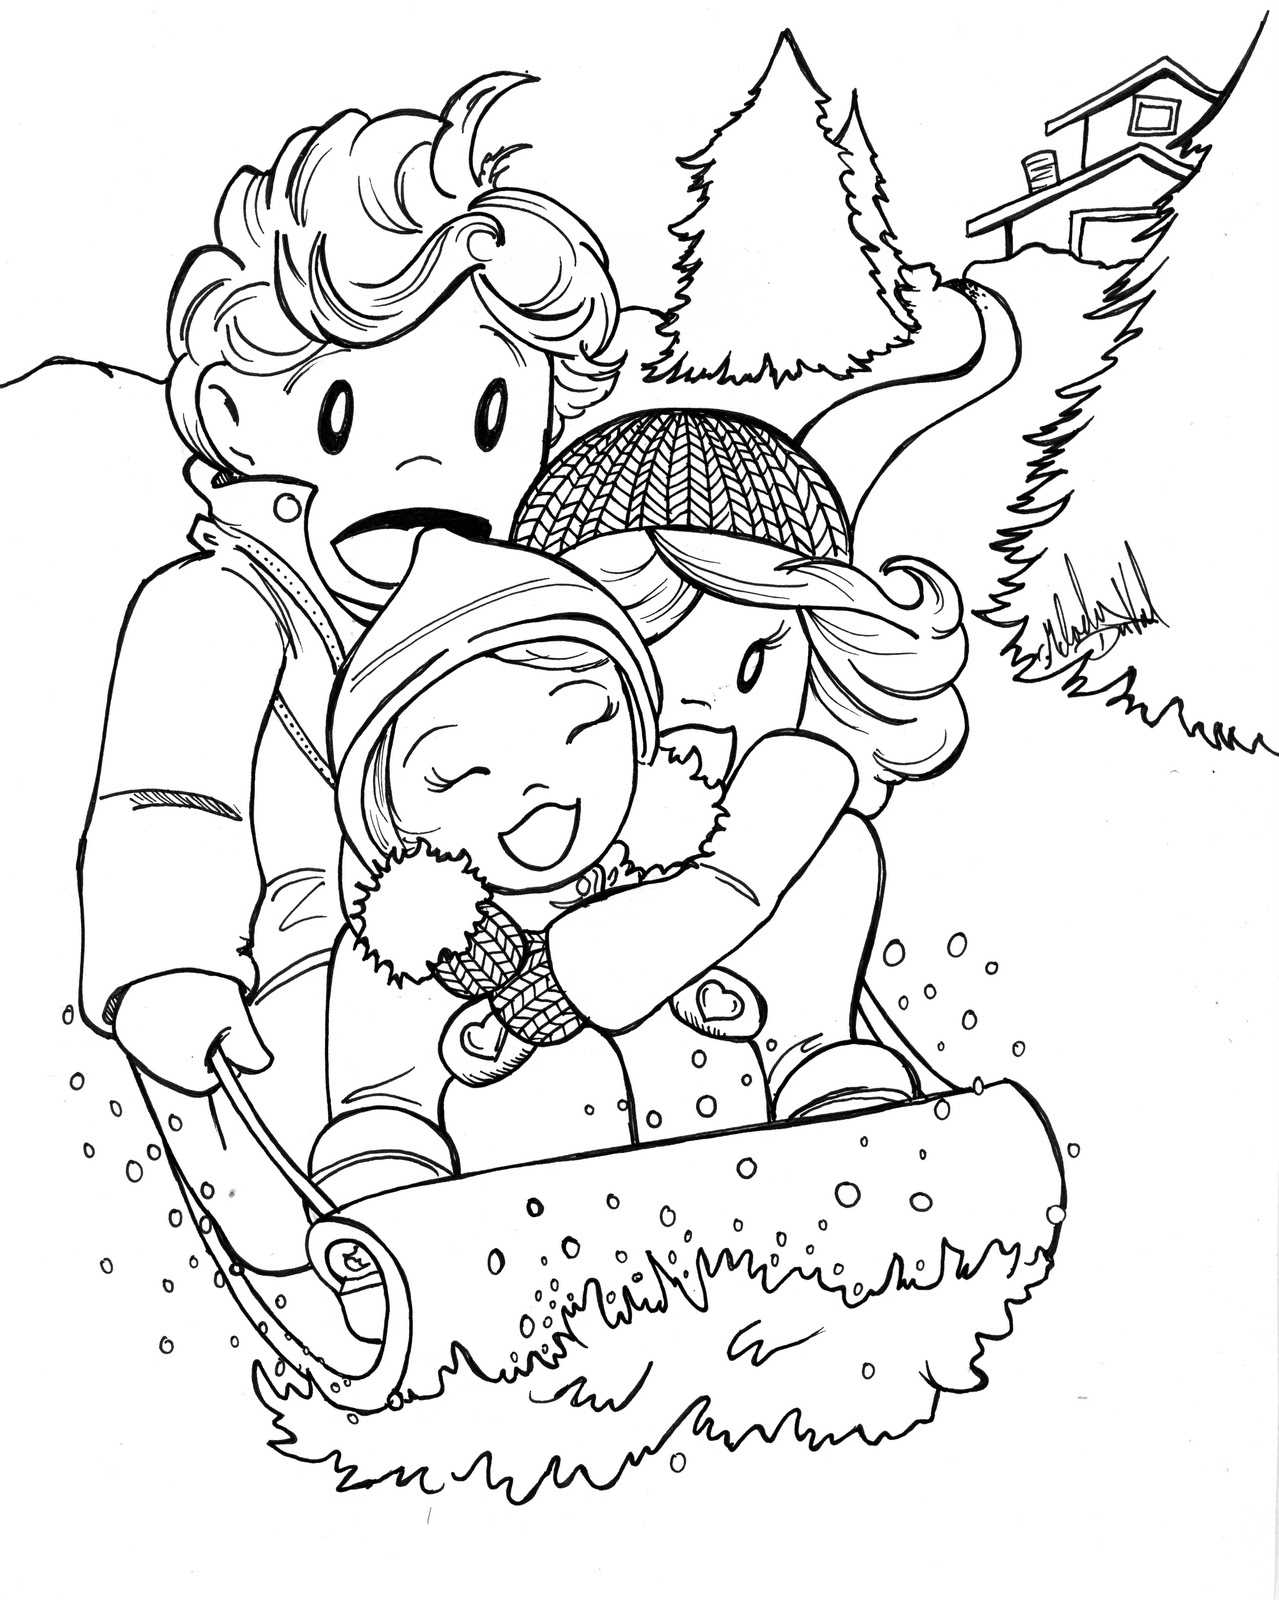 january coloring pages top 10 free printable january coloring pages online coloring pages january